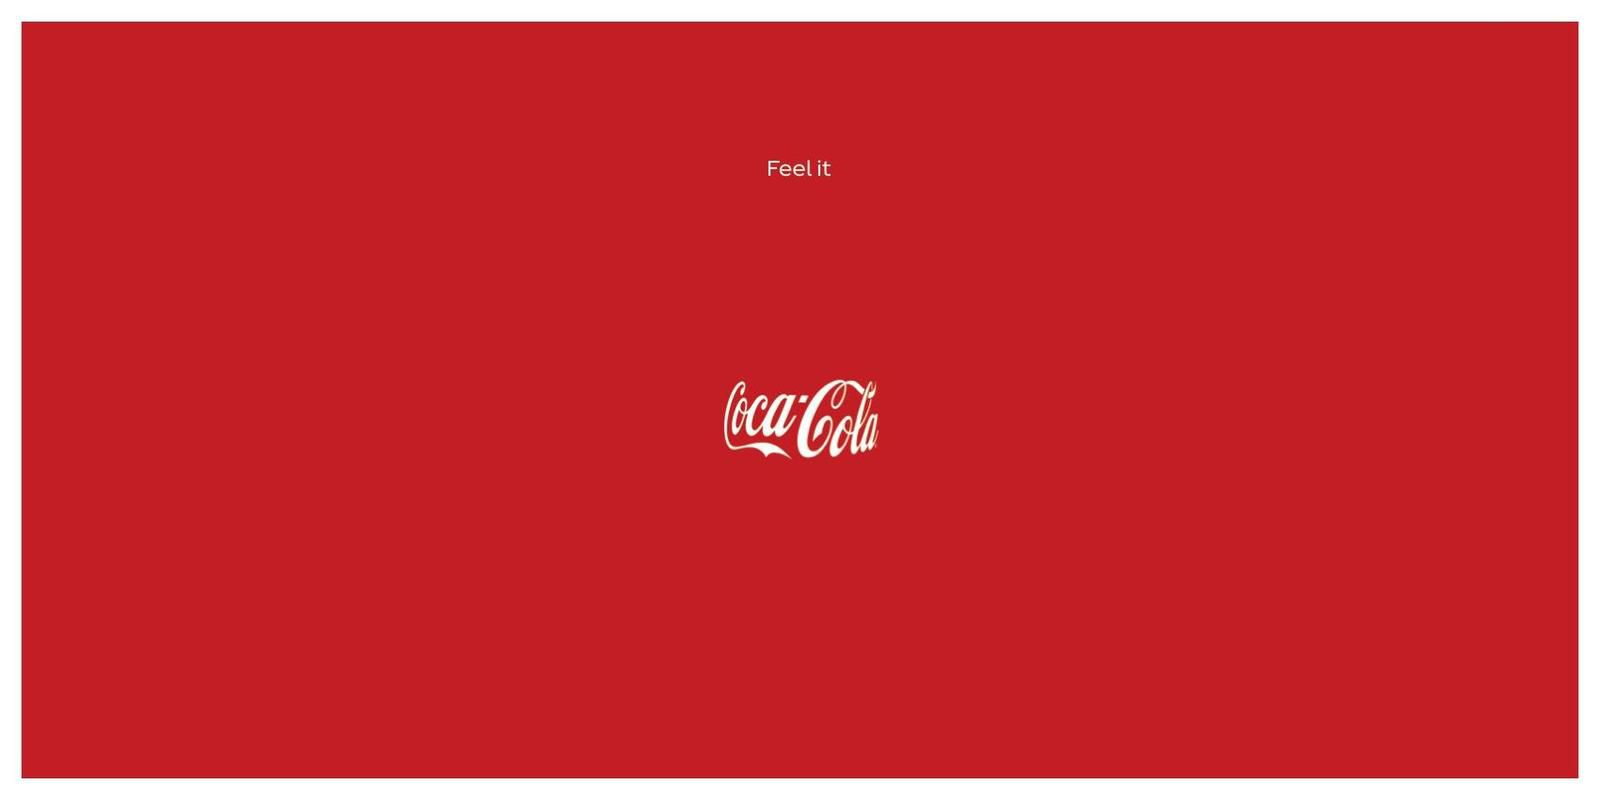 "Coca-Cola : ""Feel it"" I Agence : Publicis, Italie (février 2020)"